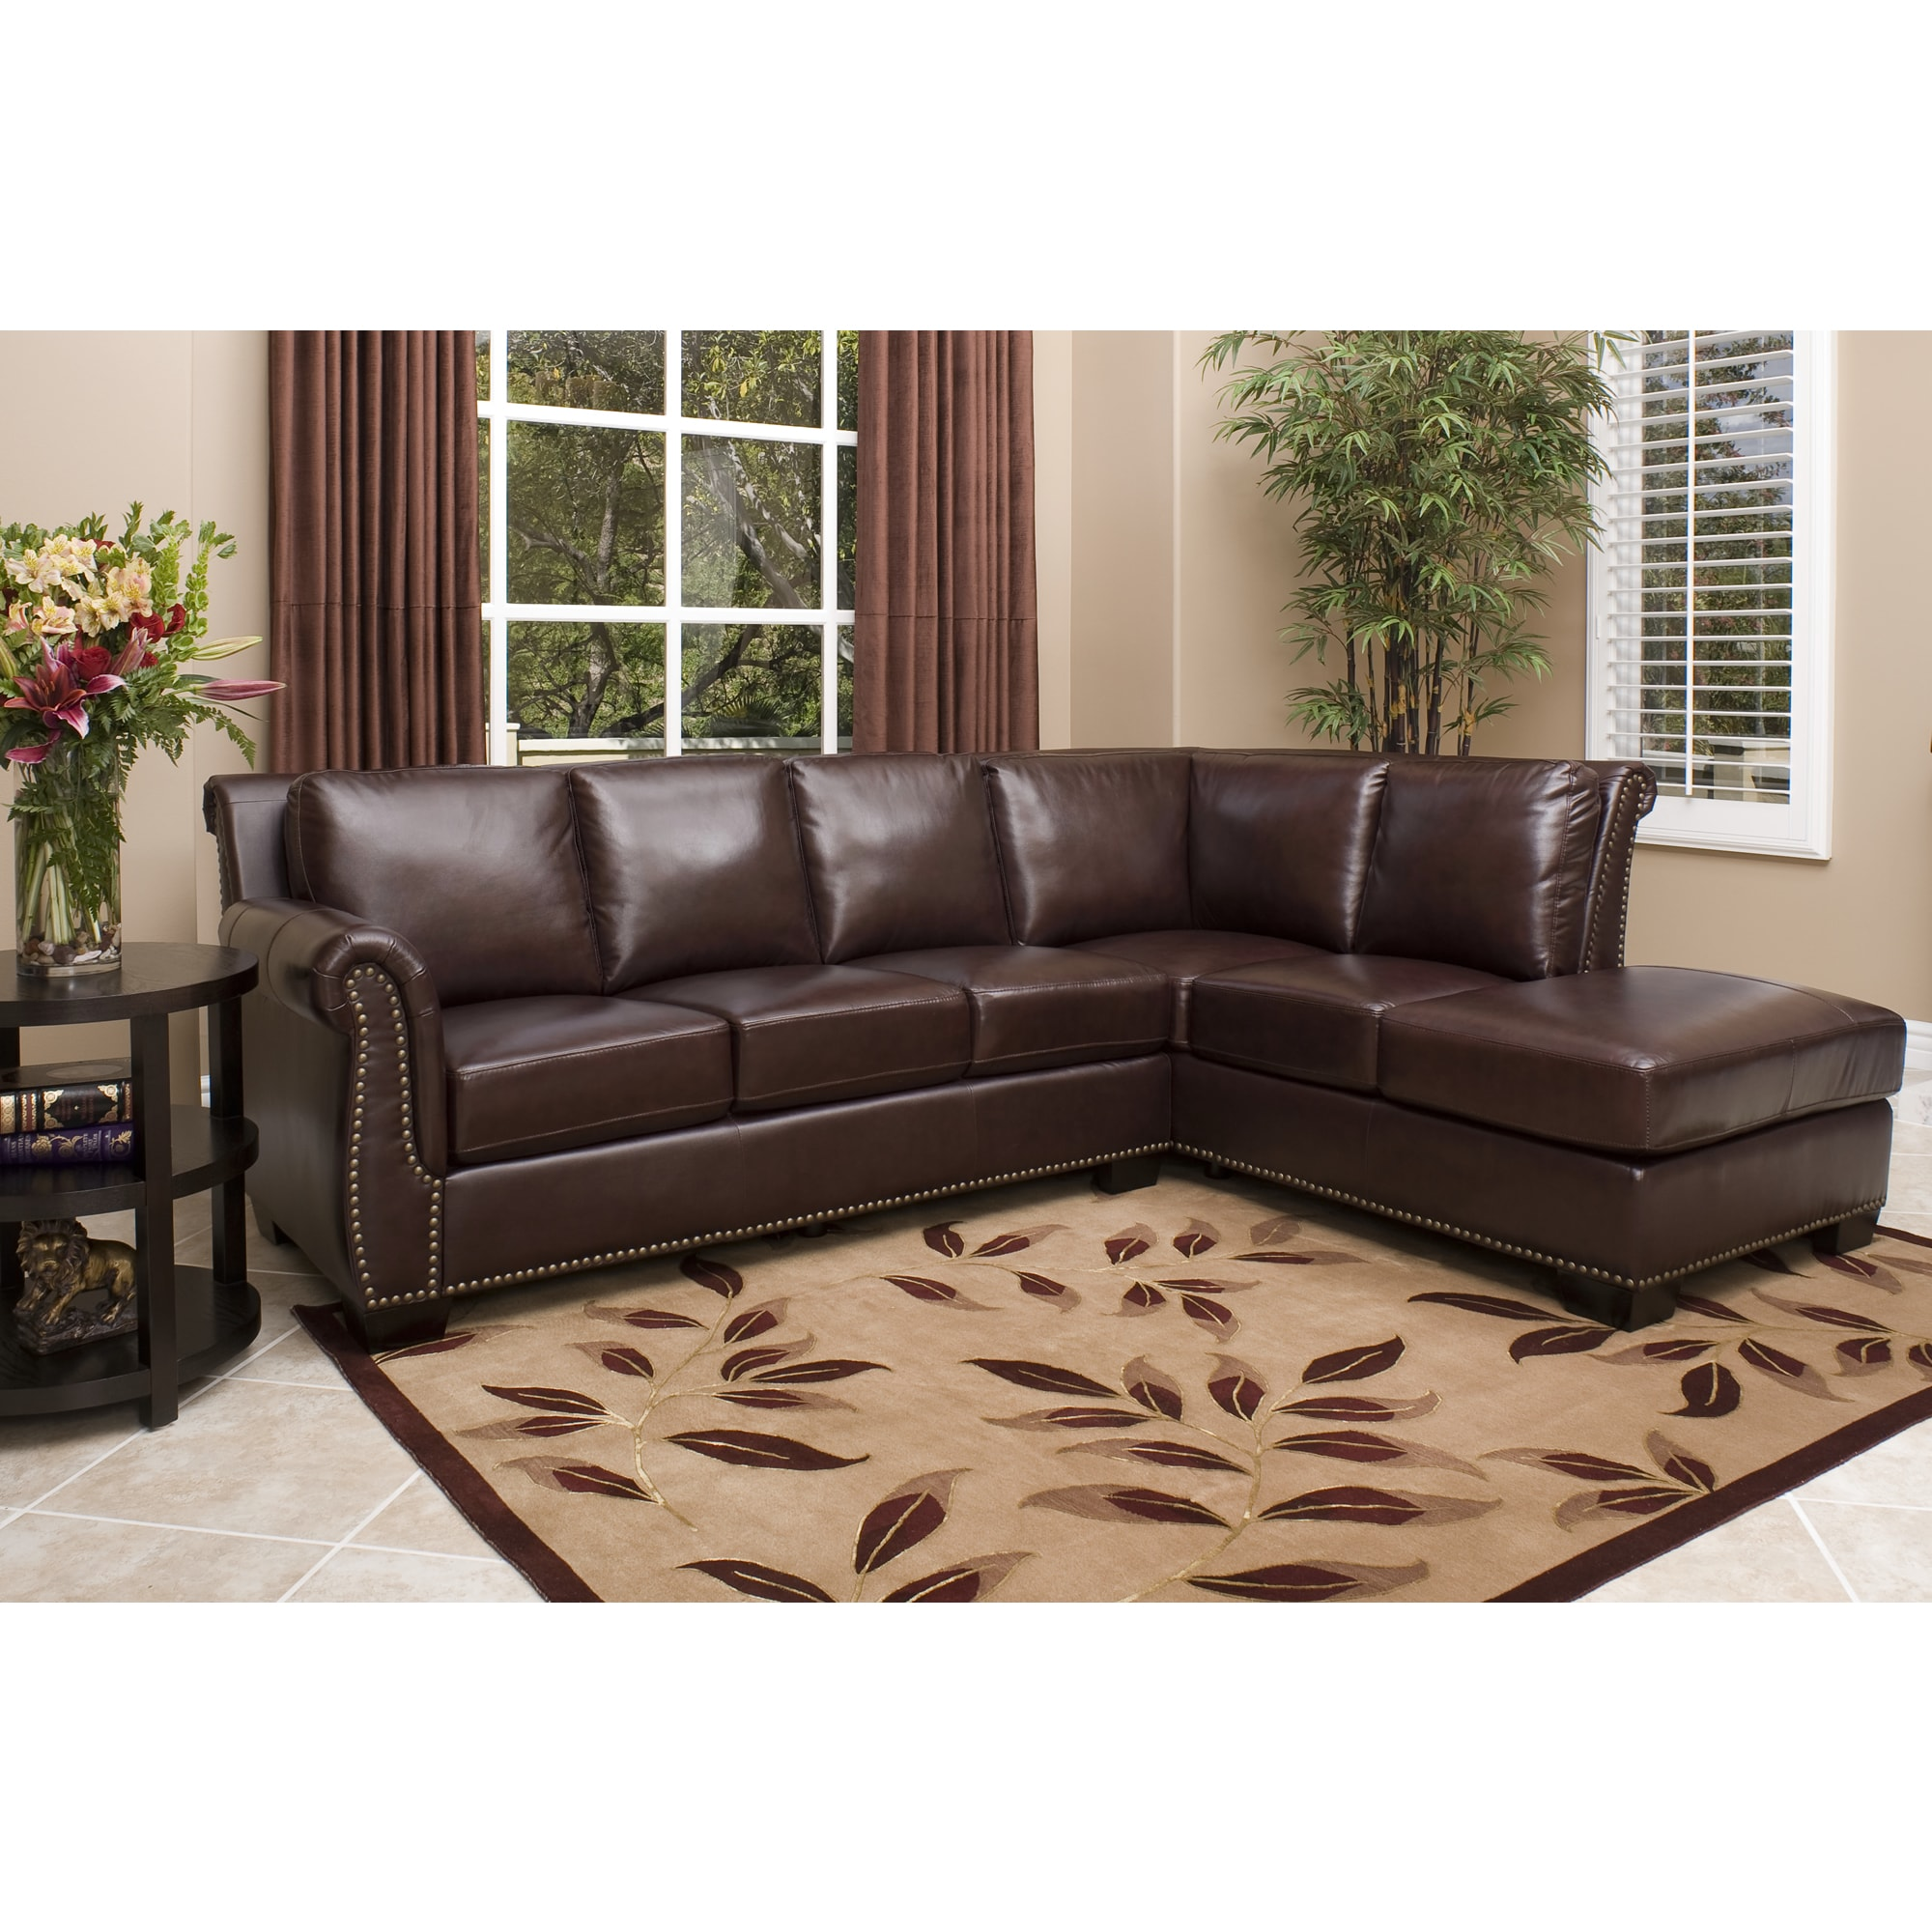 new leather sectional sofa couch living room furniture burgundy chiase